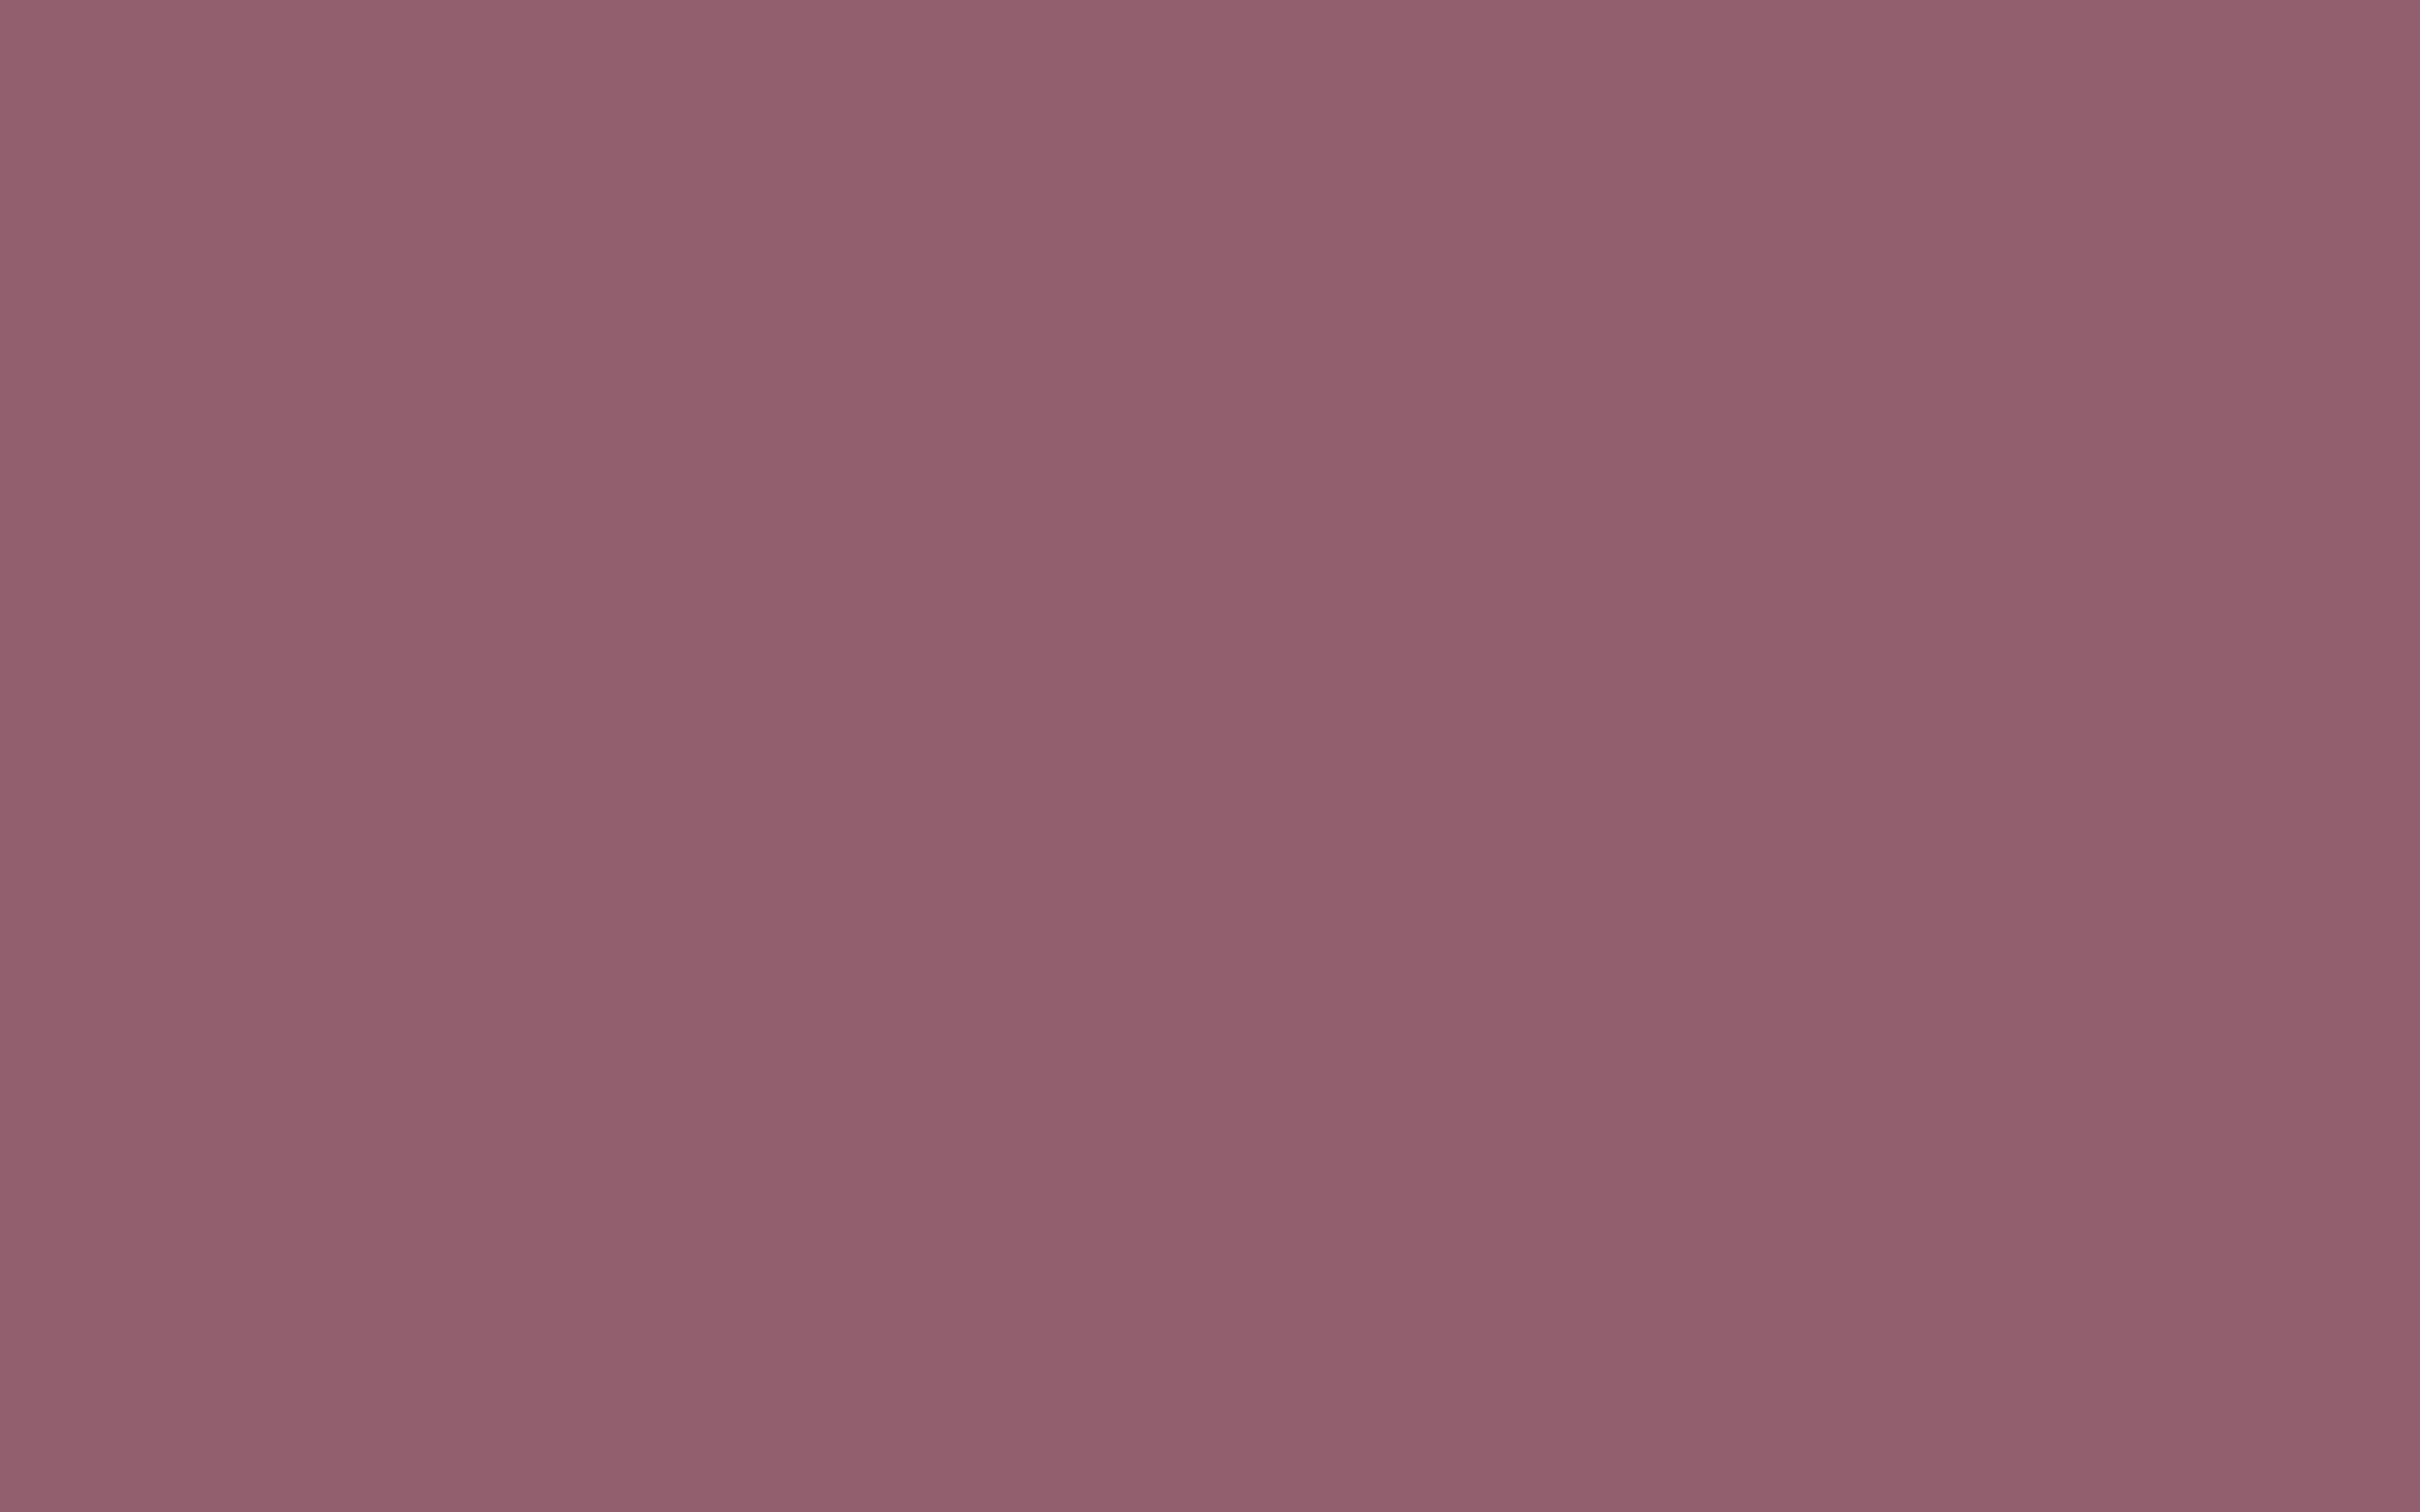 2560x1600 Raspberry Glace Solid Color Background